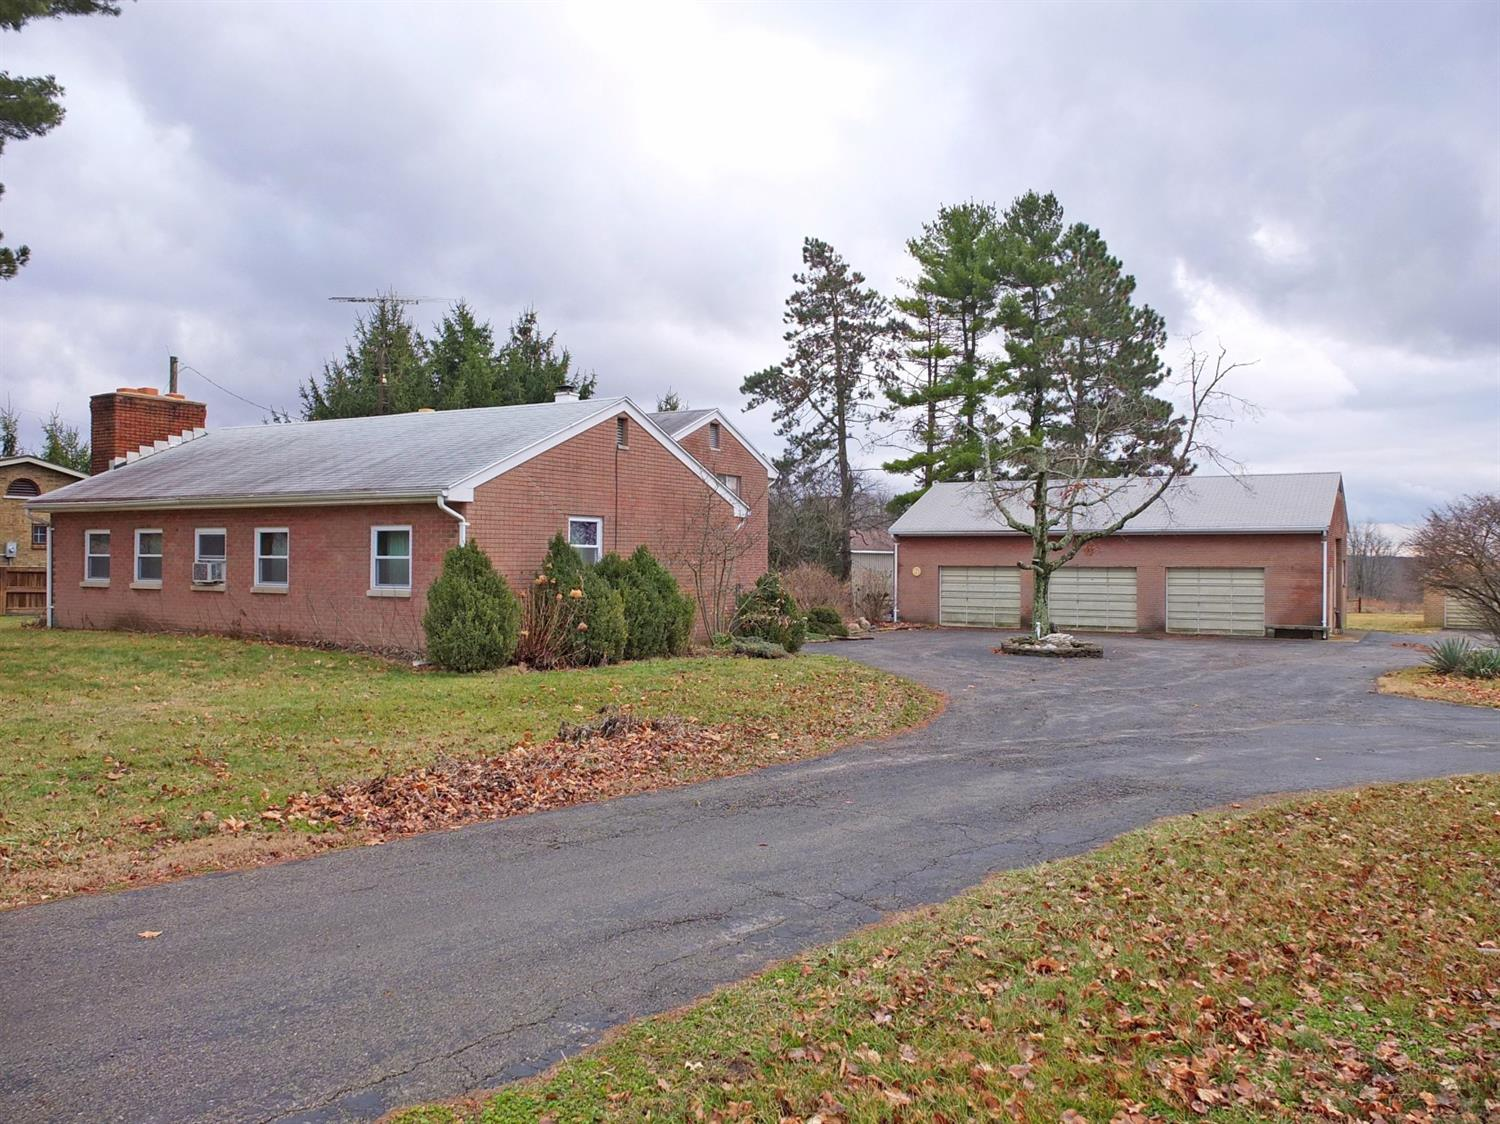 1829 E St Rt 73 Clear Creek Twp., OH